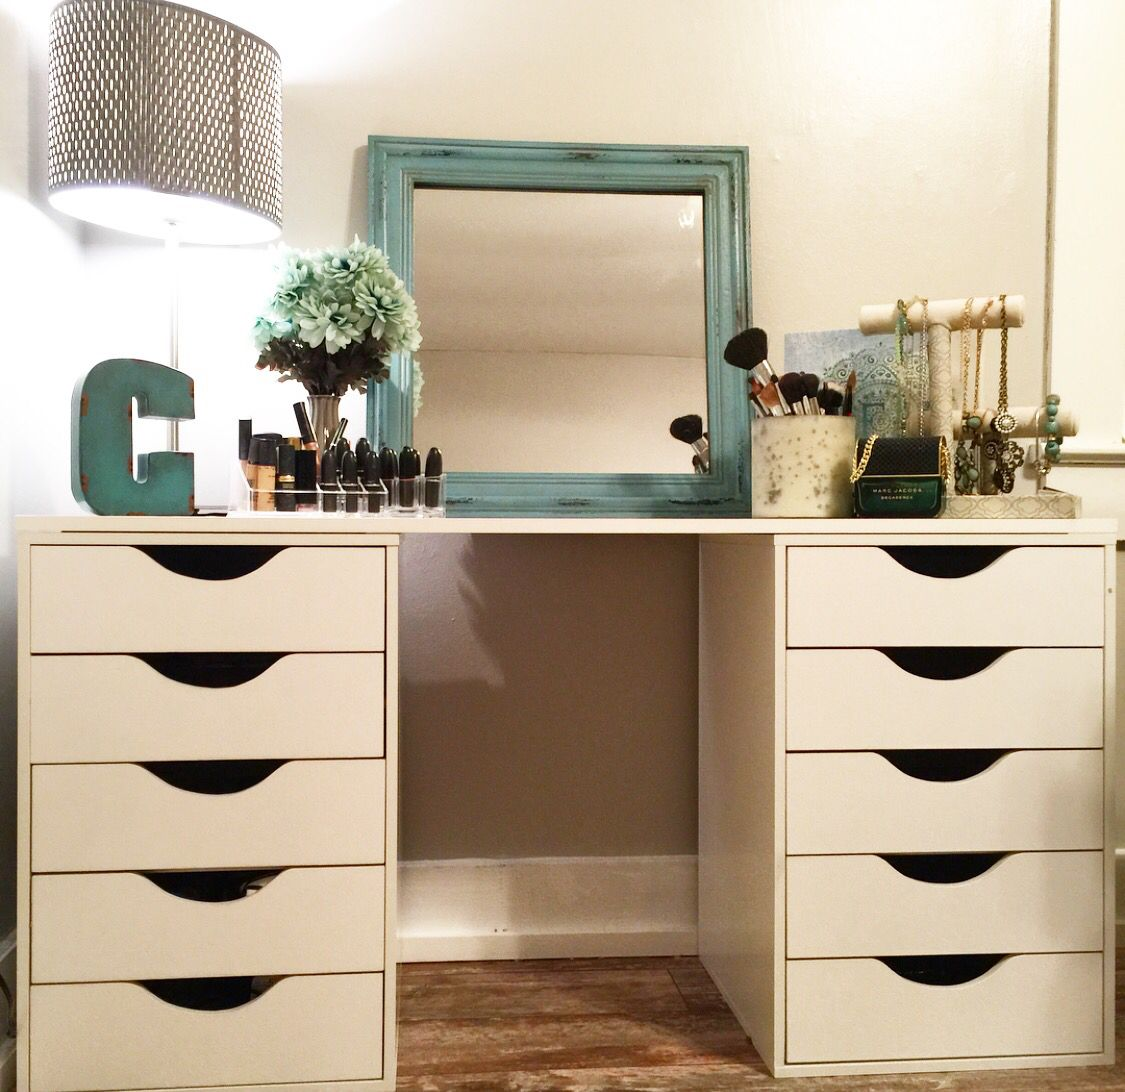 So happy to say I created this cute vintage vanity all on my own. Share away!